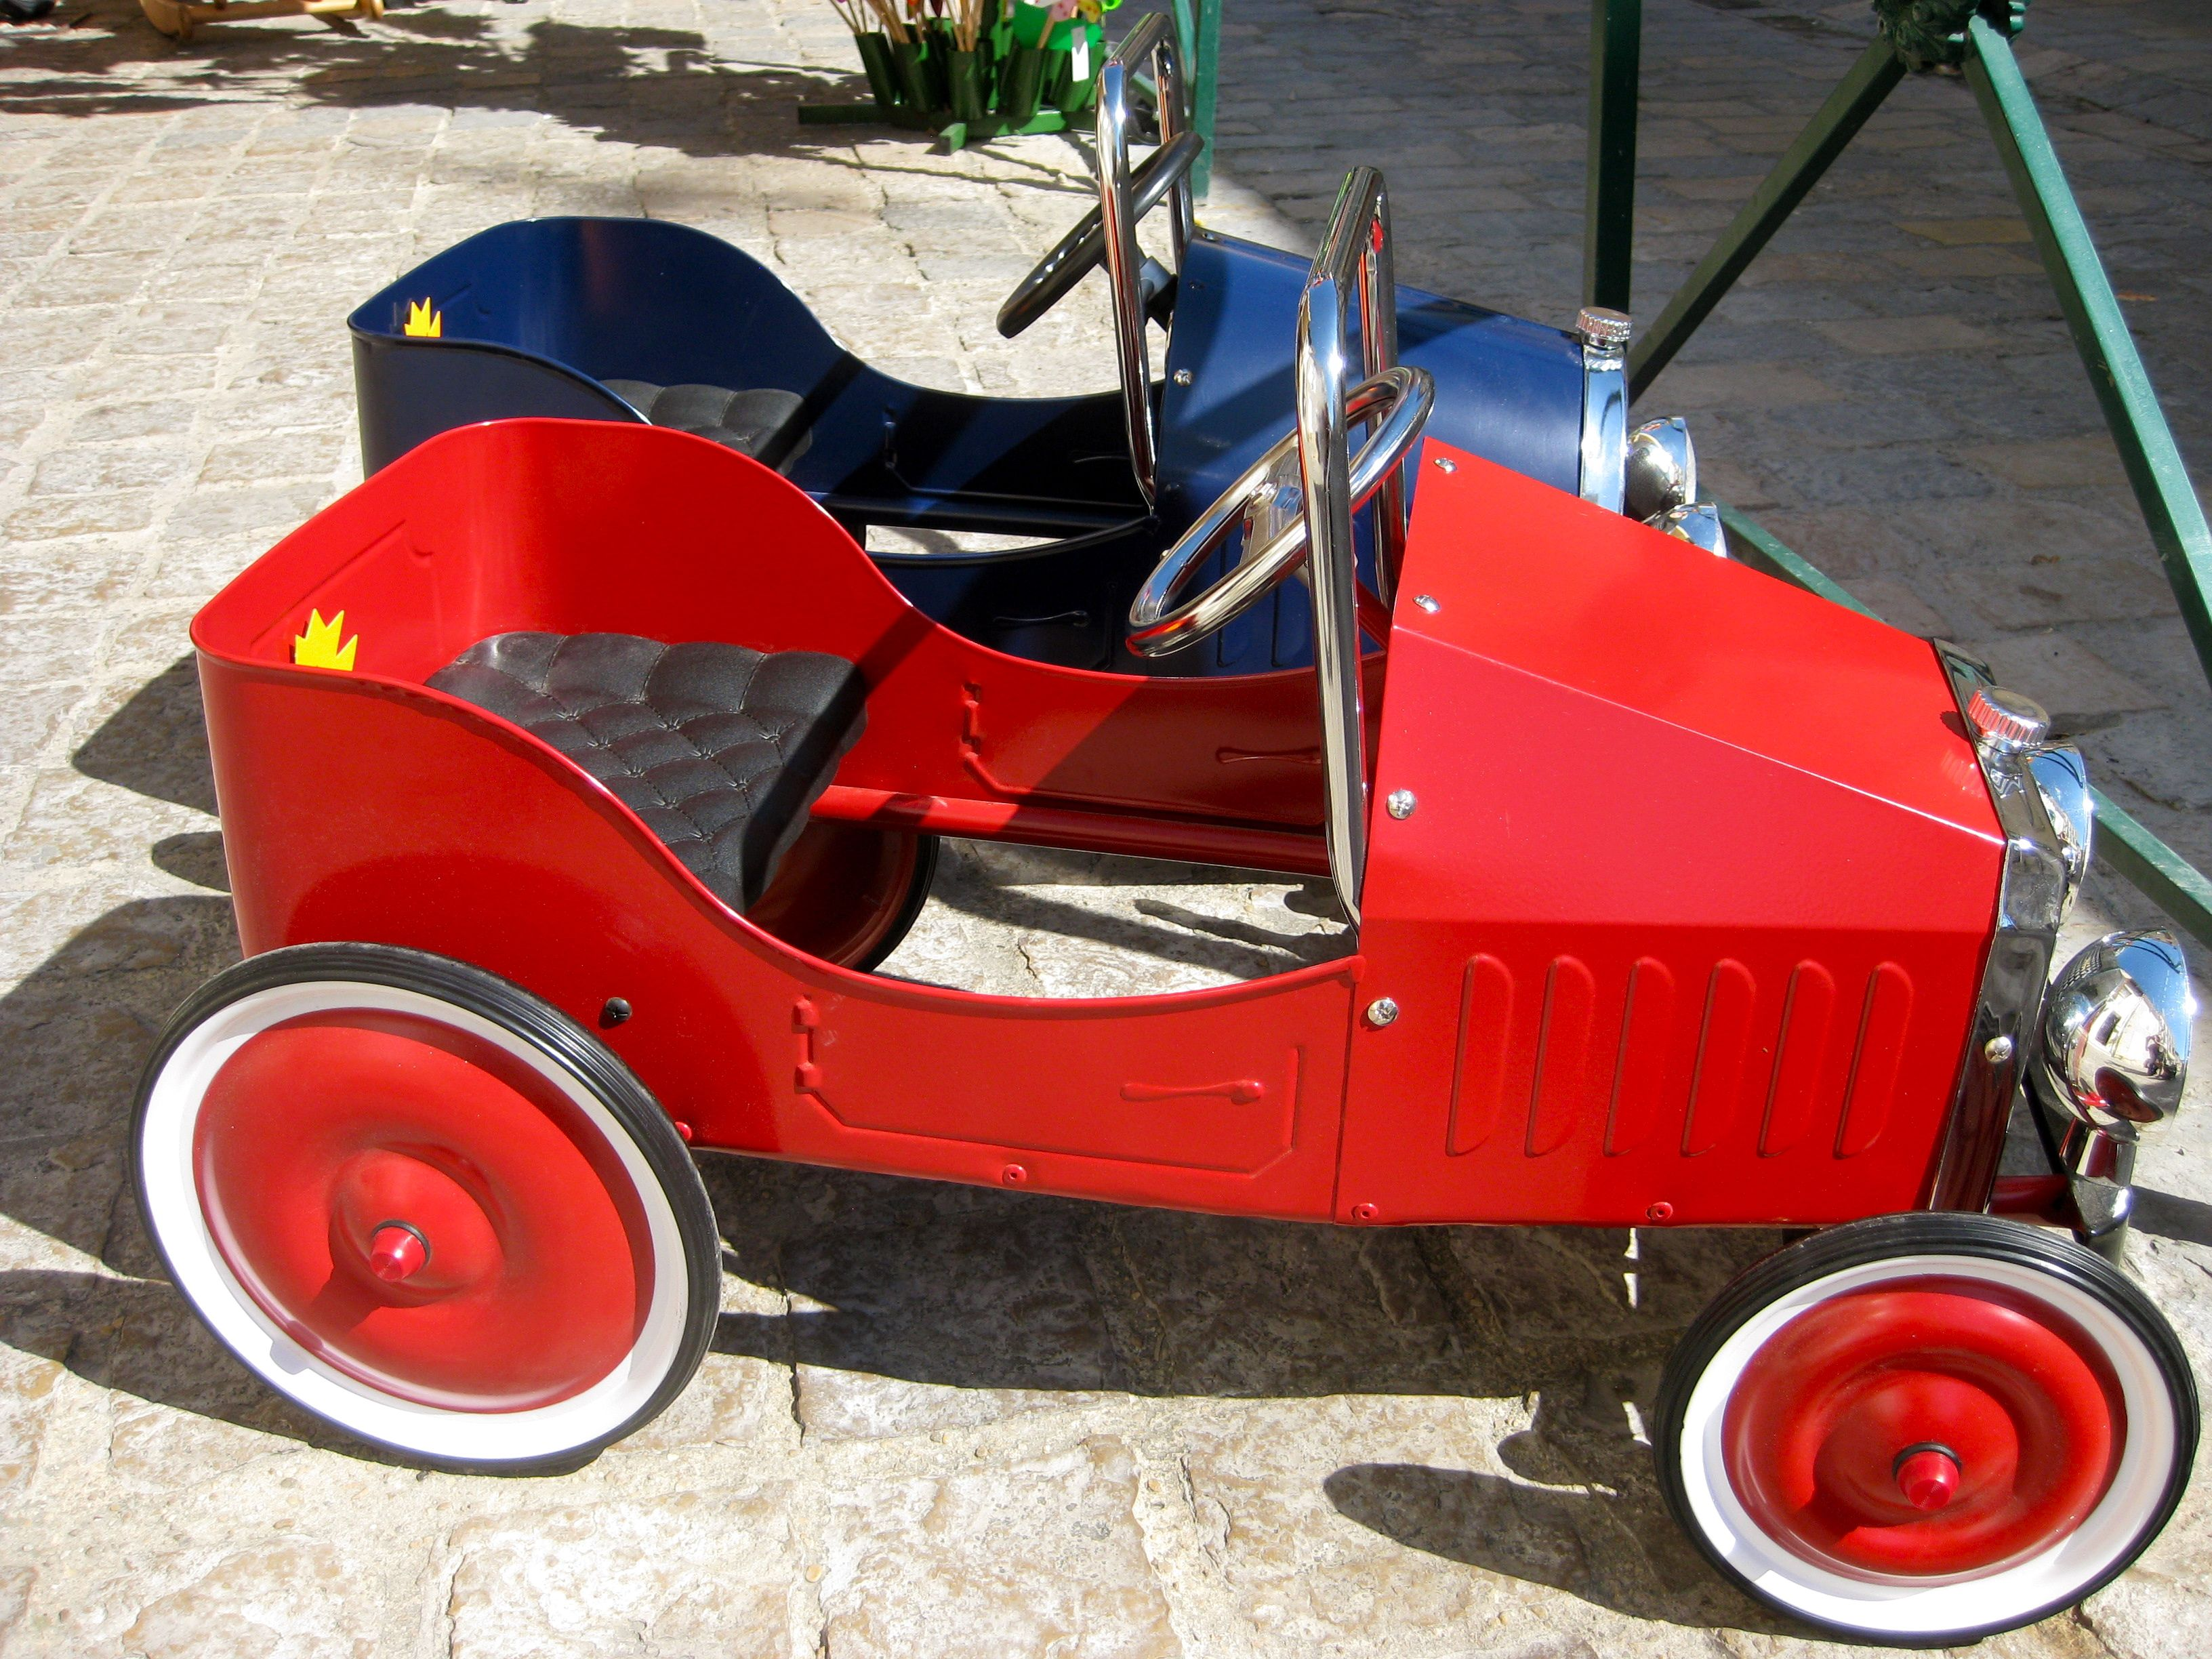 Cars To Buy In Aigues Mortes A Medieval City Near Montpellier In The Carmargue Toy Car Medieval Aigues Mortes